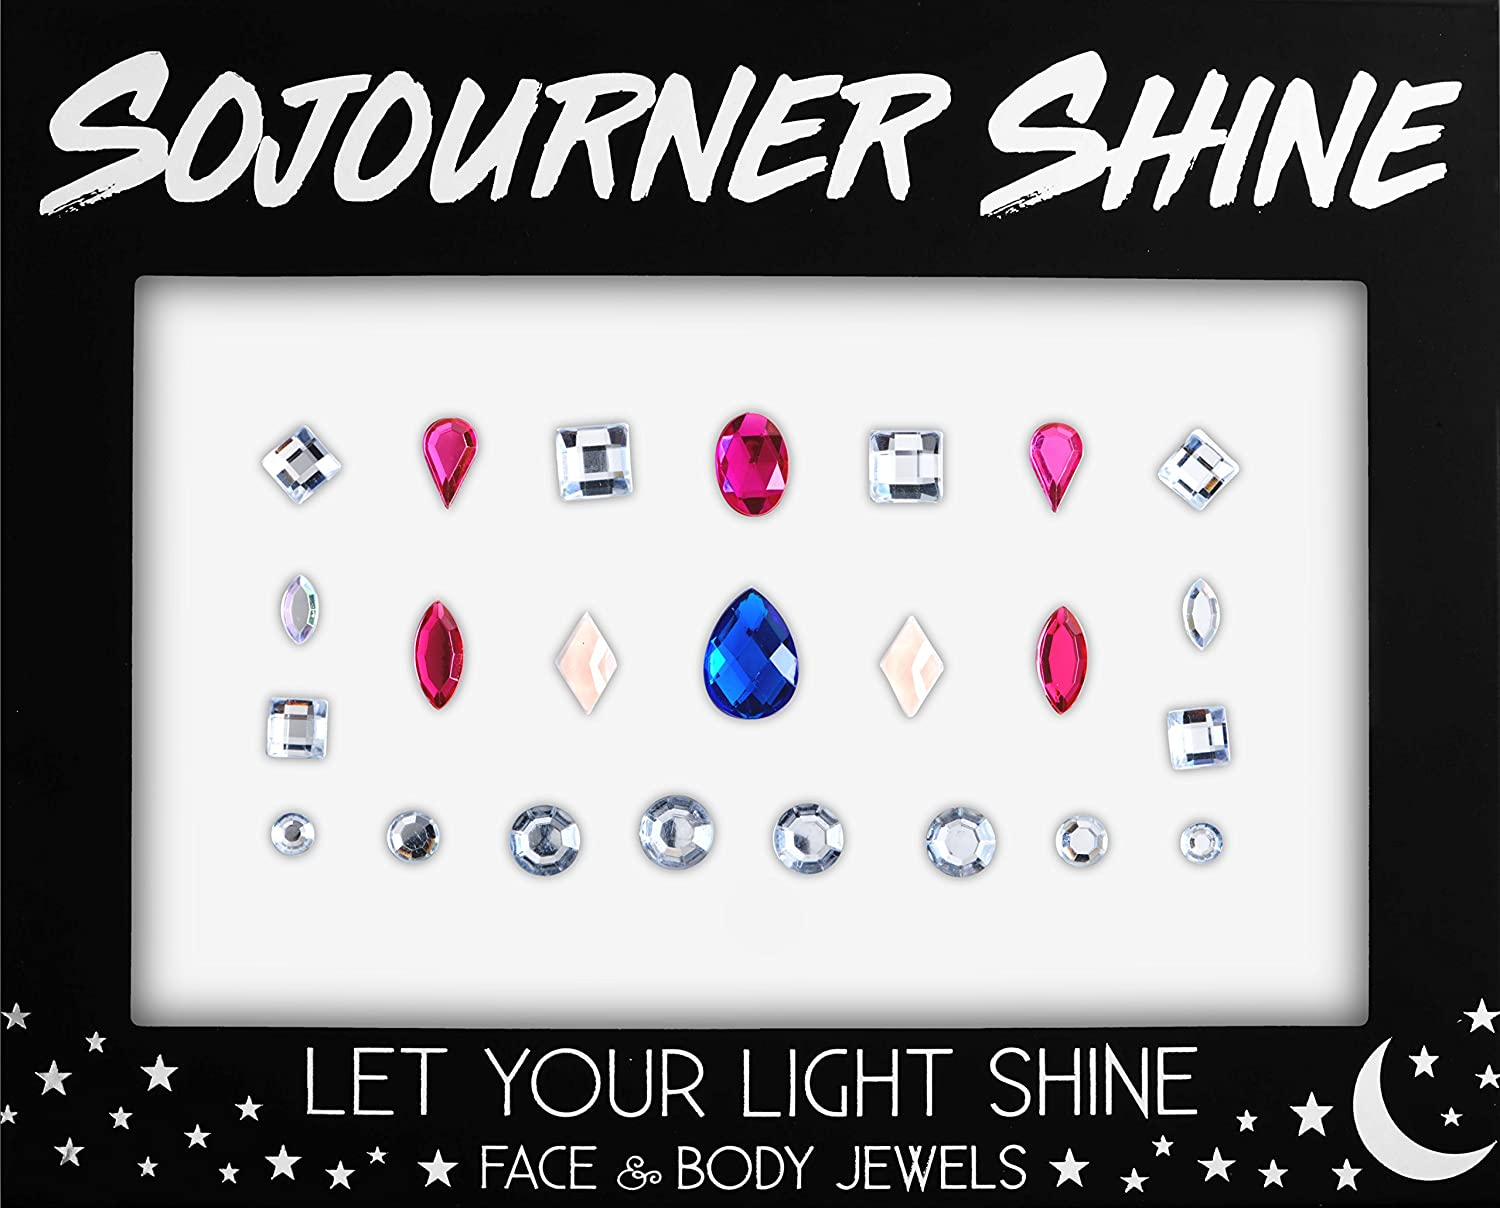 Face Jewels Glitter Gems Rhinestones – Eye Body Jewels Gems | Rhinestone Stickers | Body Glitter Festival Rave & Party Accessories by SoJourner (Indian Princess) SoJourner Bags